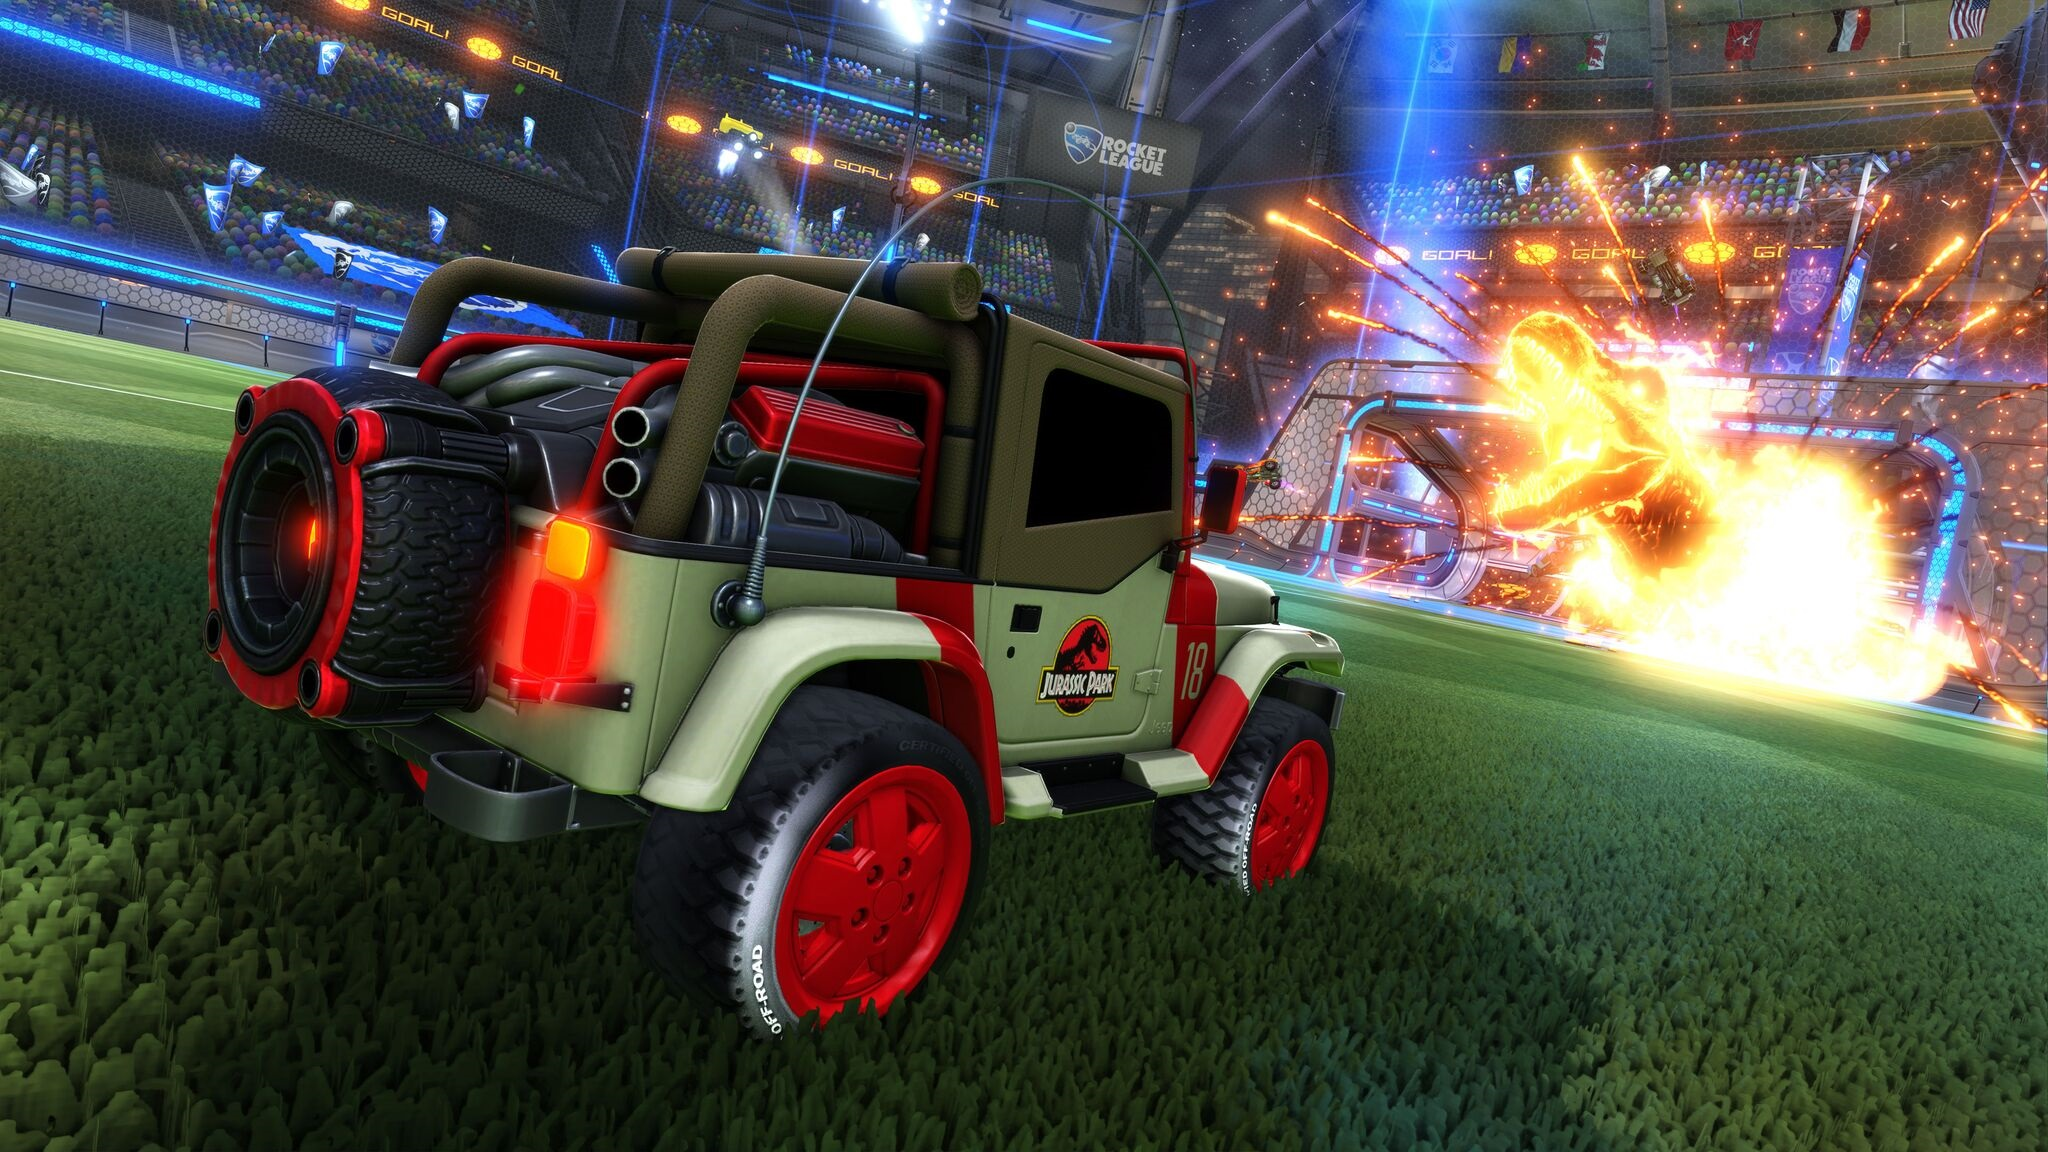 The Jurassic Park Jeep is coming to Rocket League screenshot